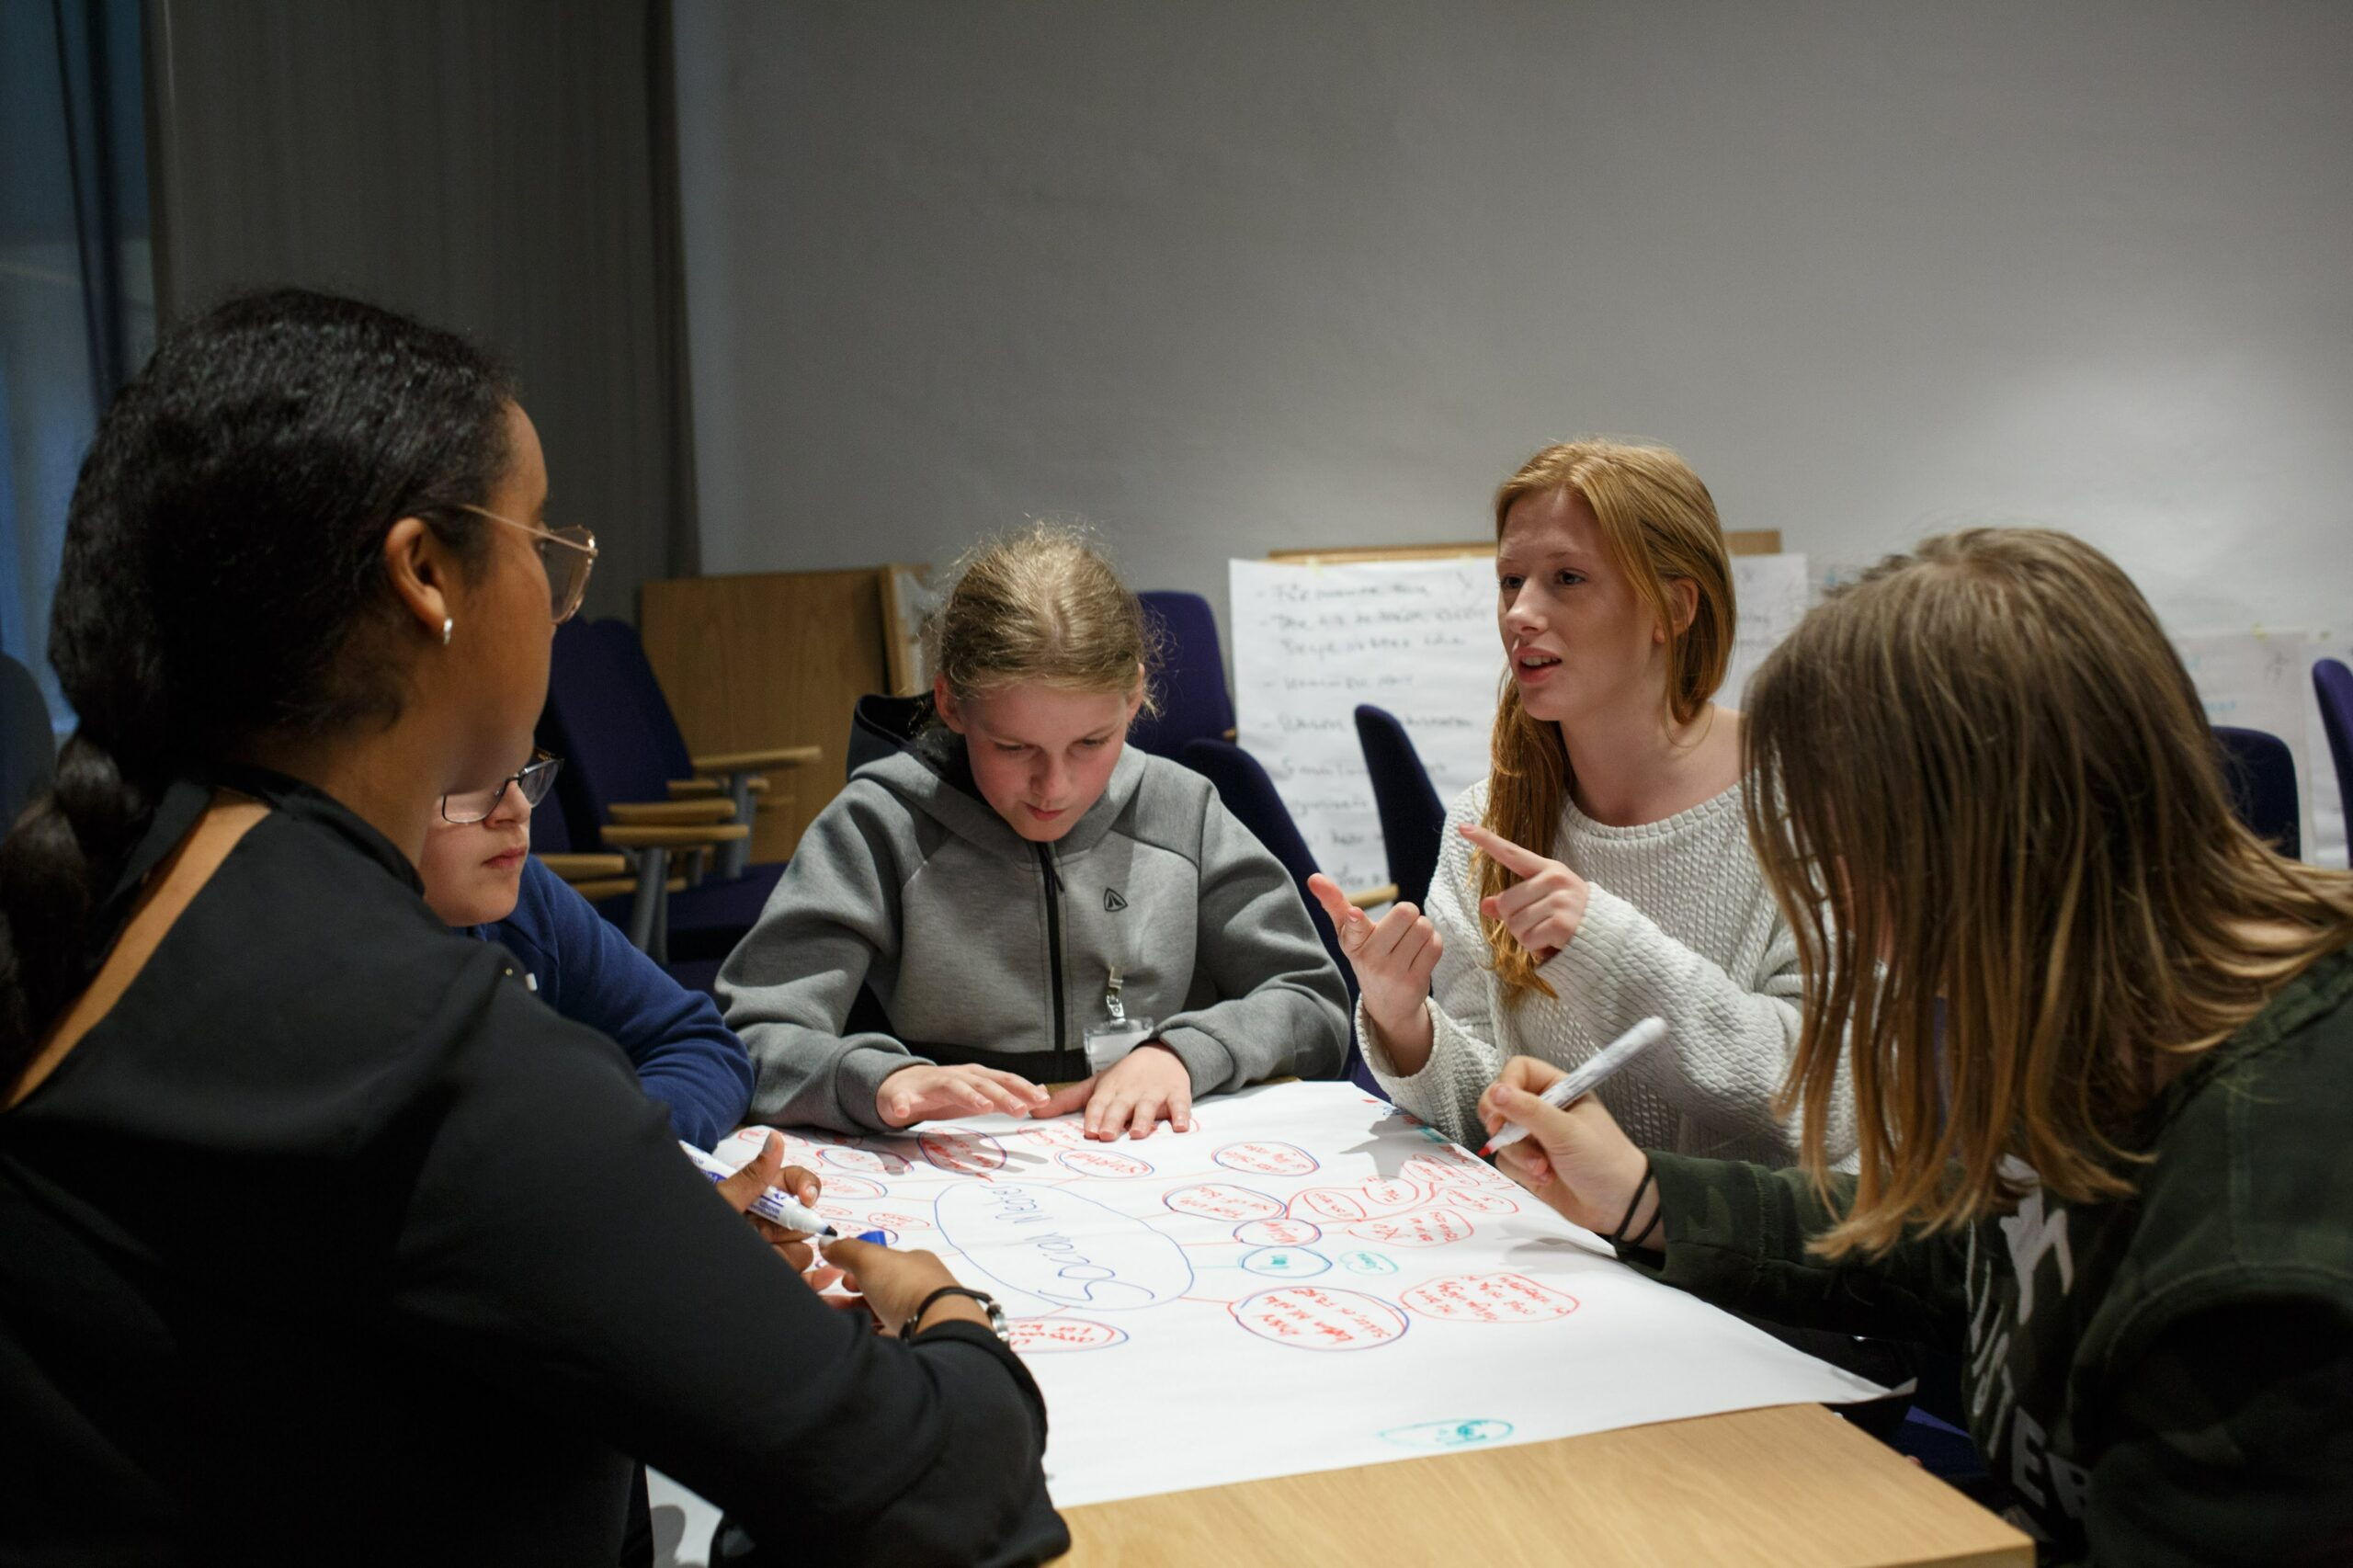 Cooperative Learning For Increased Student Attention